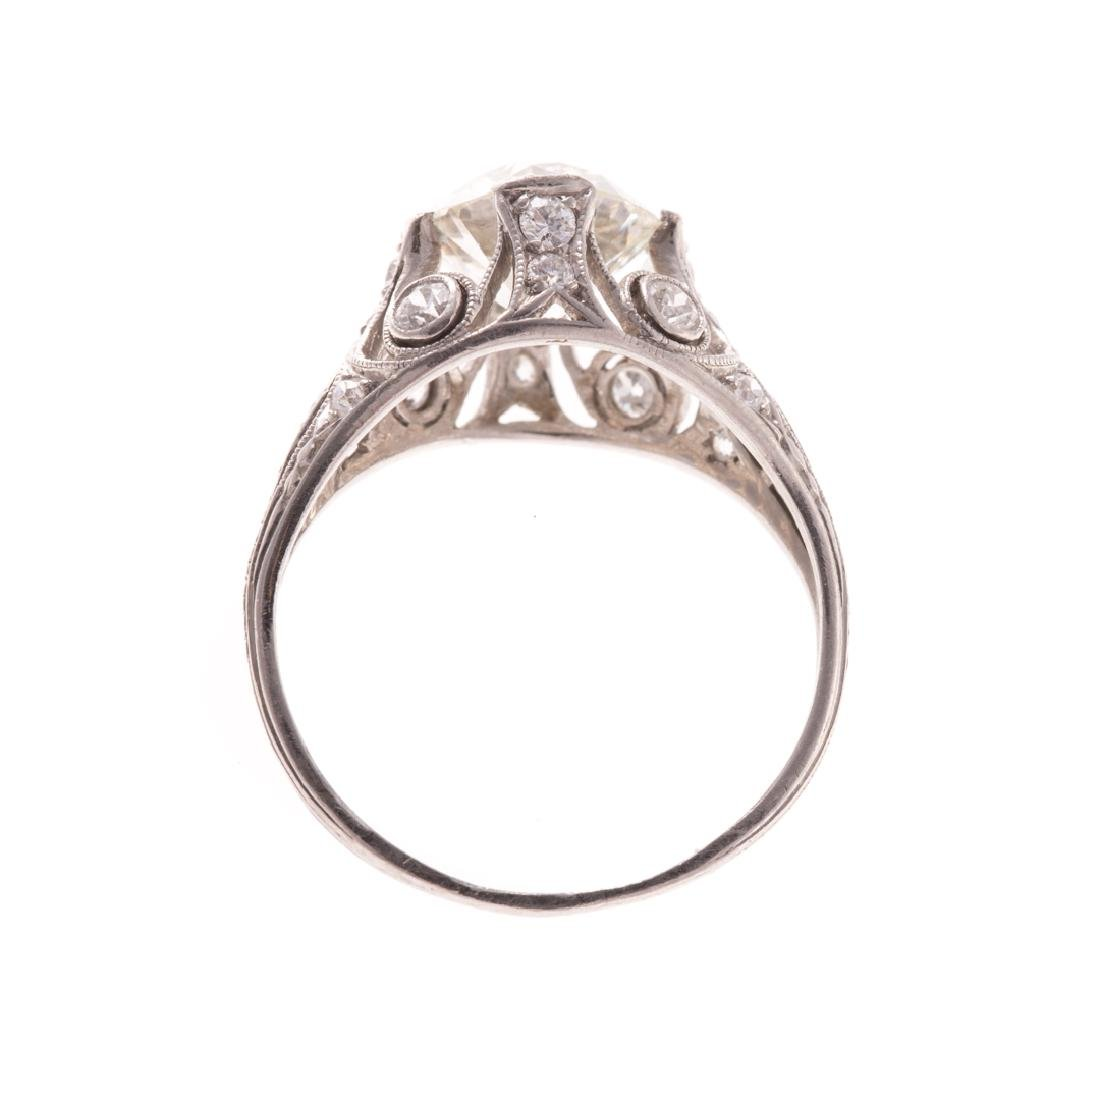 A Lady's 1.75 ct. Round Diamond Ring in Platinum - 3